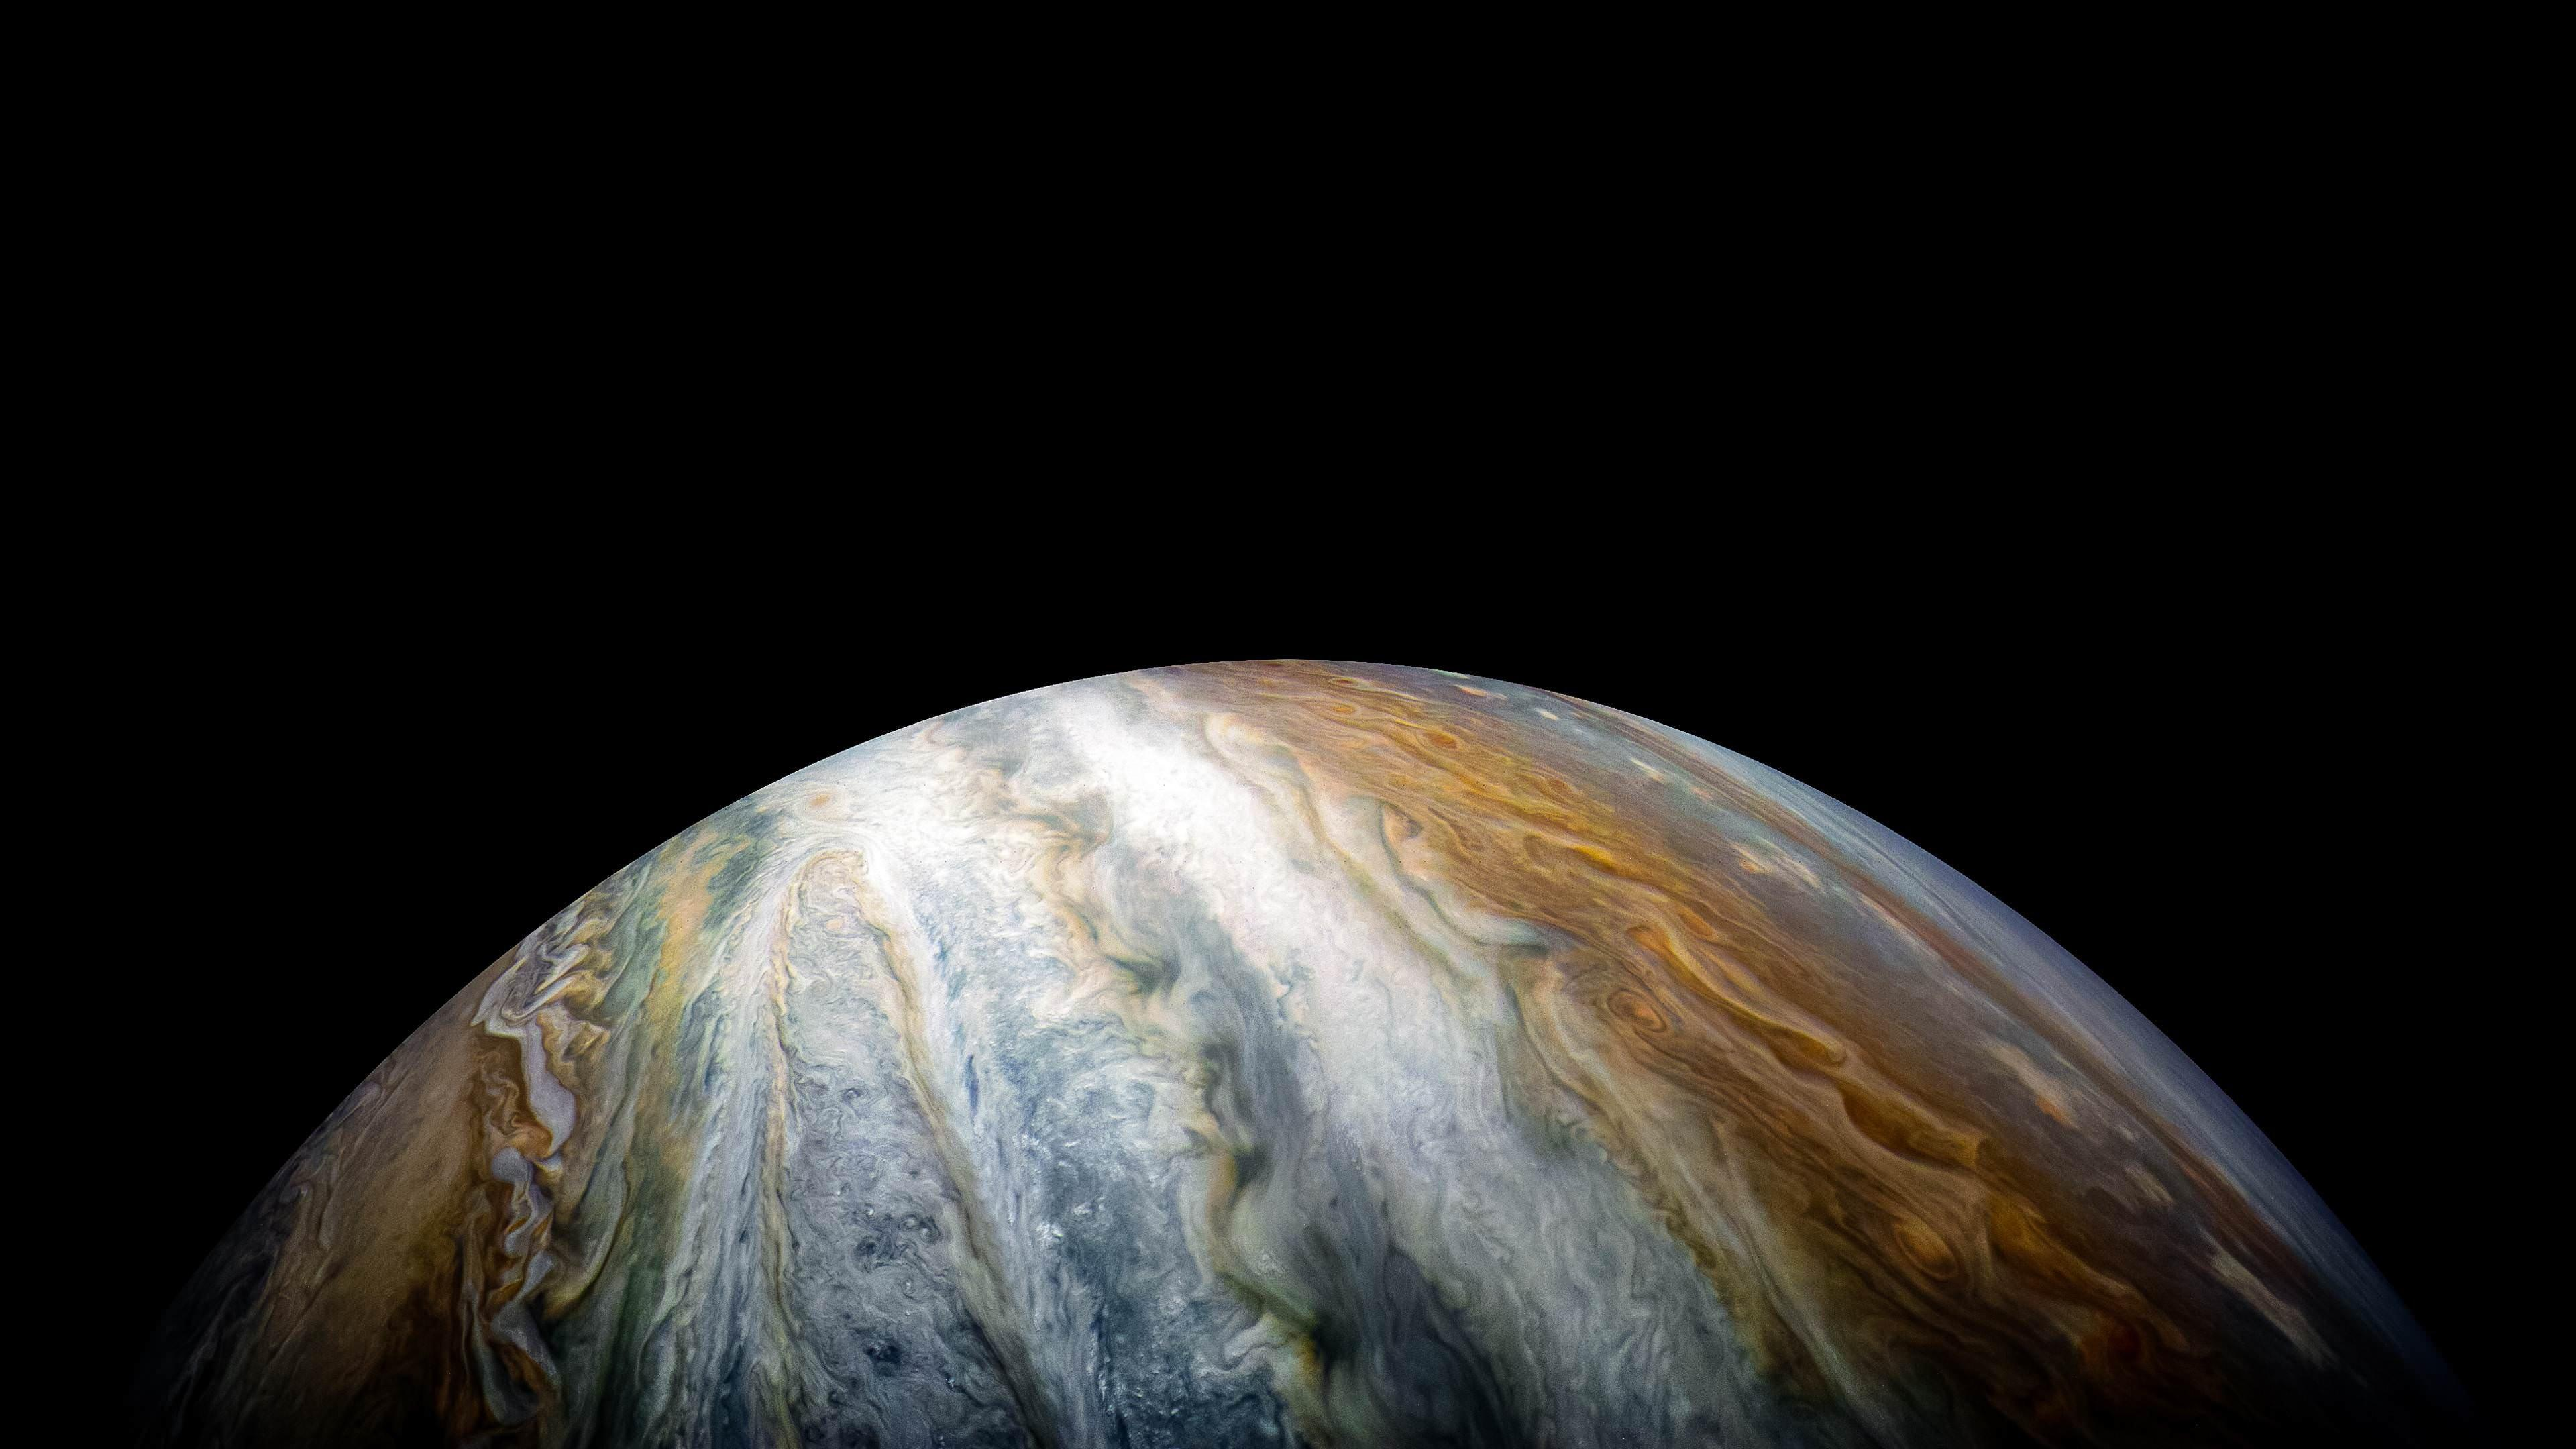 jupiter wallpapers 4k for your phone and desktop screen